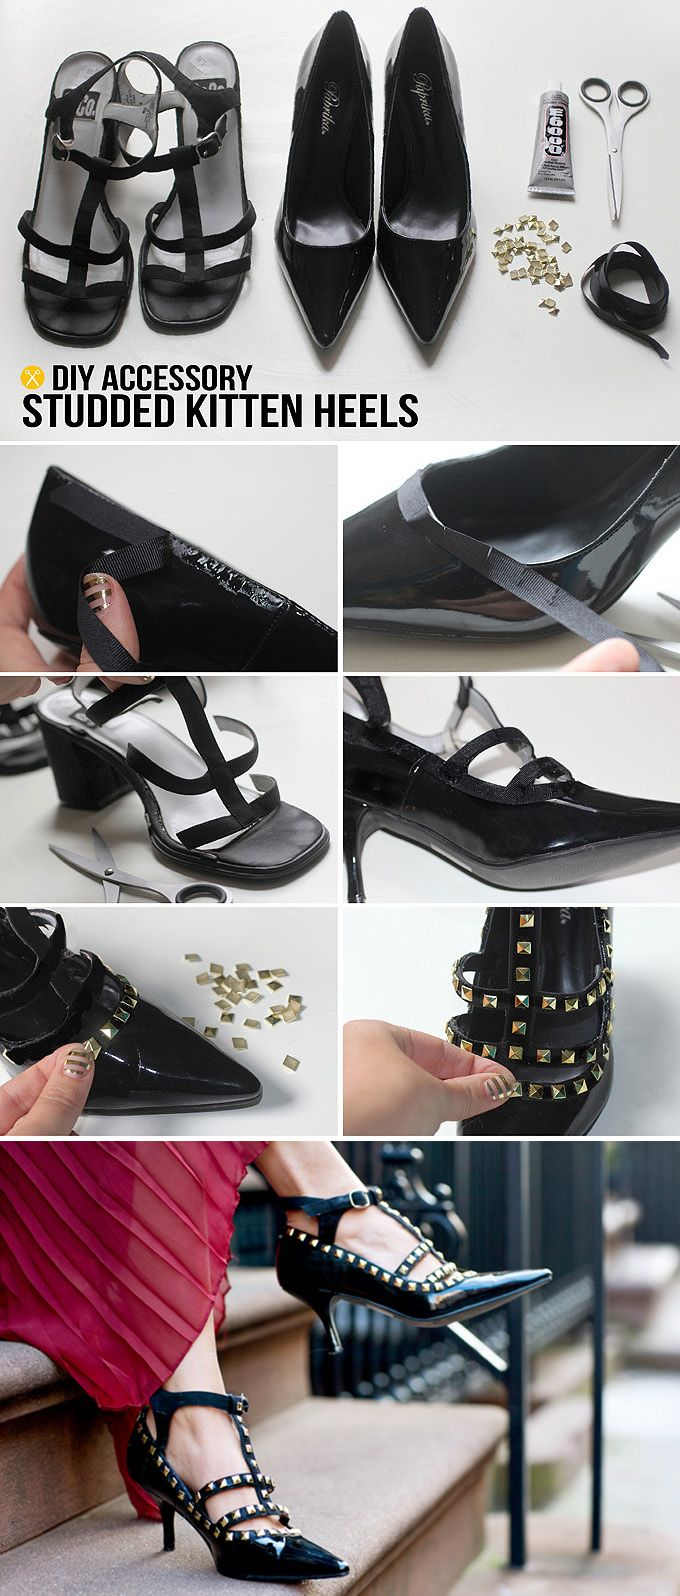 DIY Studded Kitten Heels ... Find 20 more DIY ideas to rock Christmas party #DIYCrafts